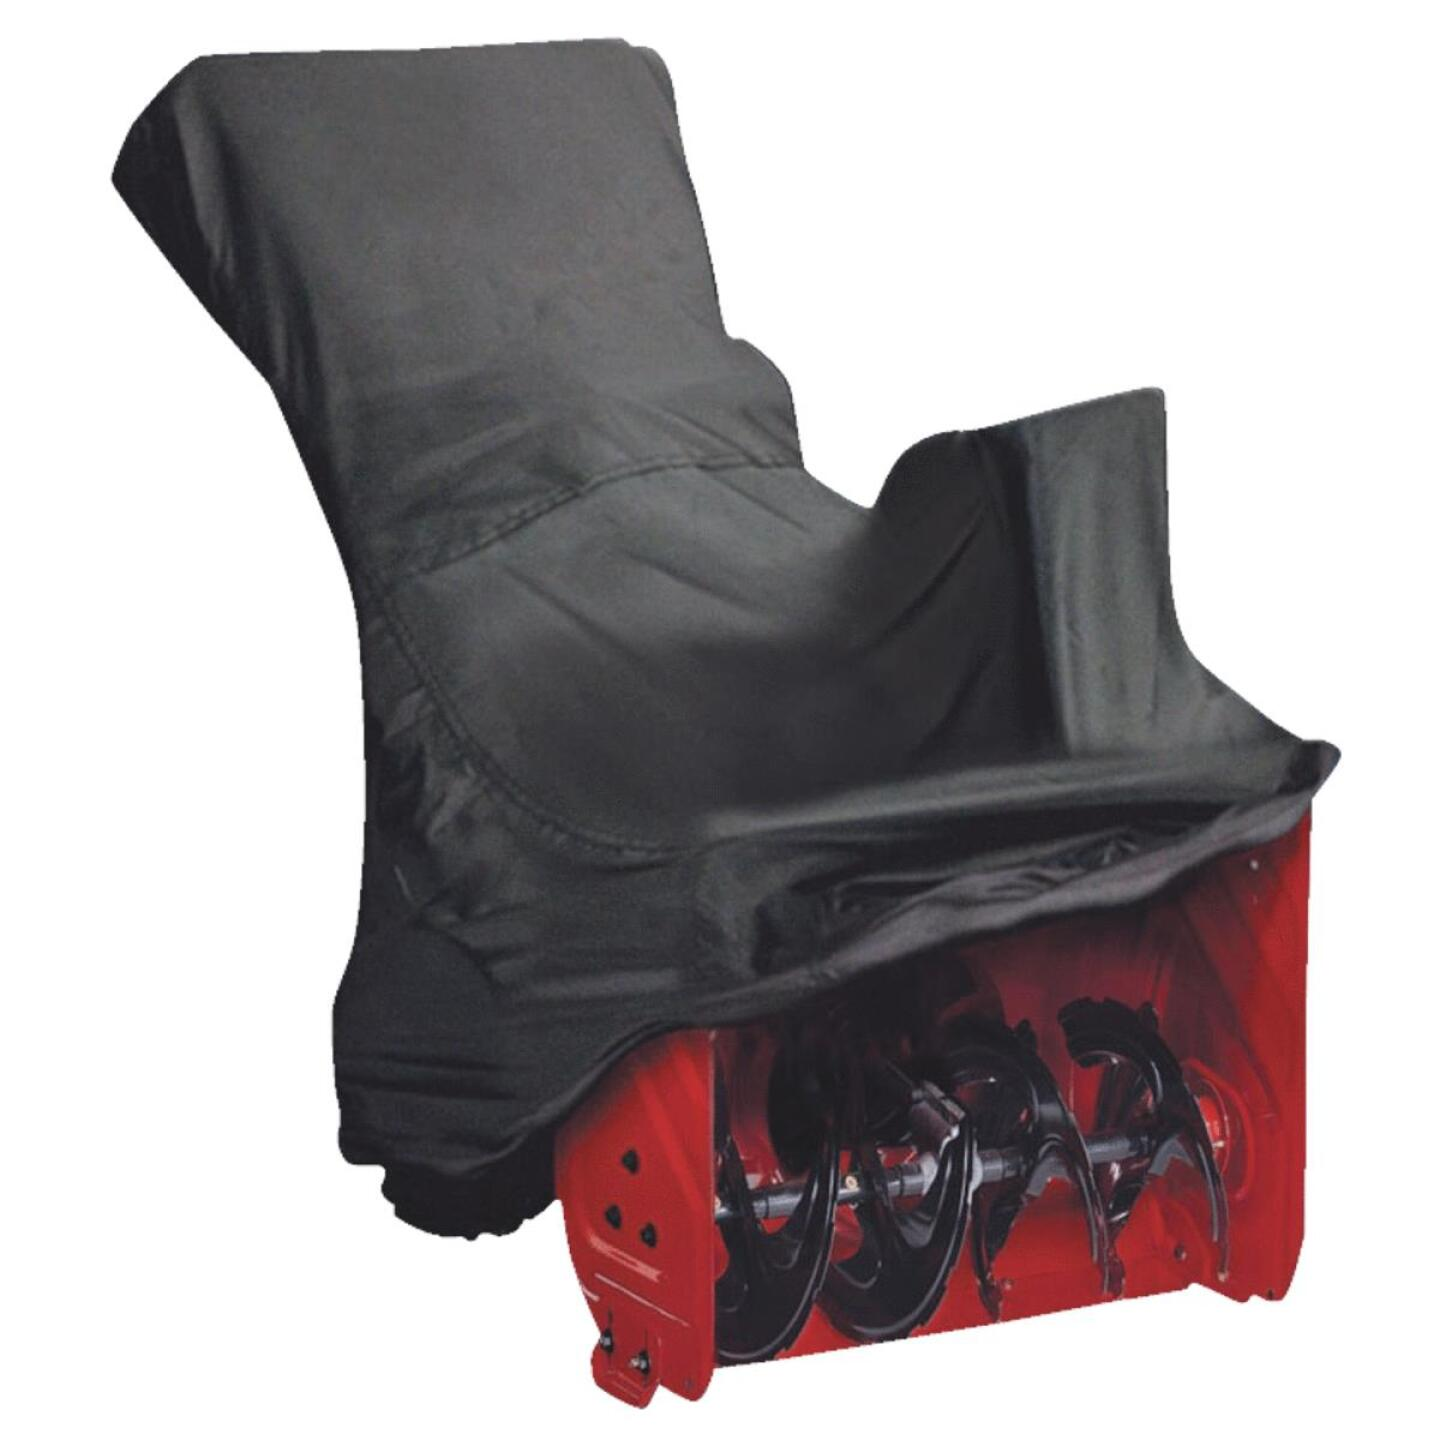 Arnold Vinyl Universal Snow Blower Cover Image 1